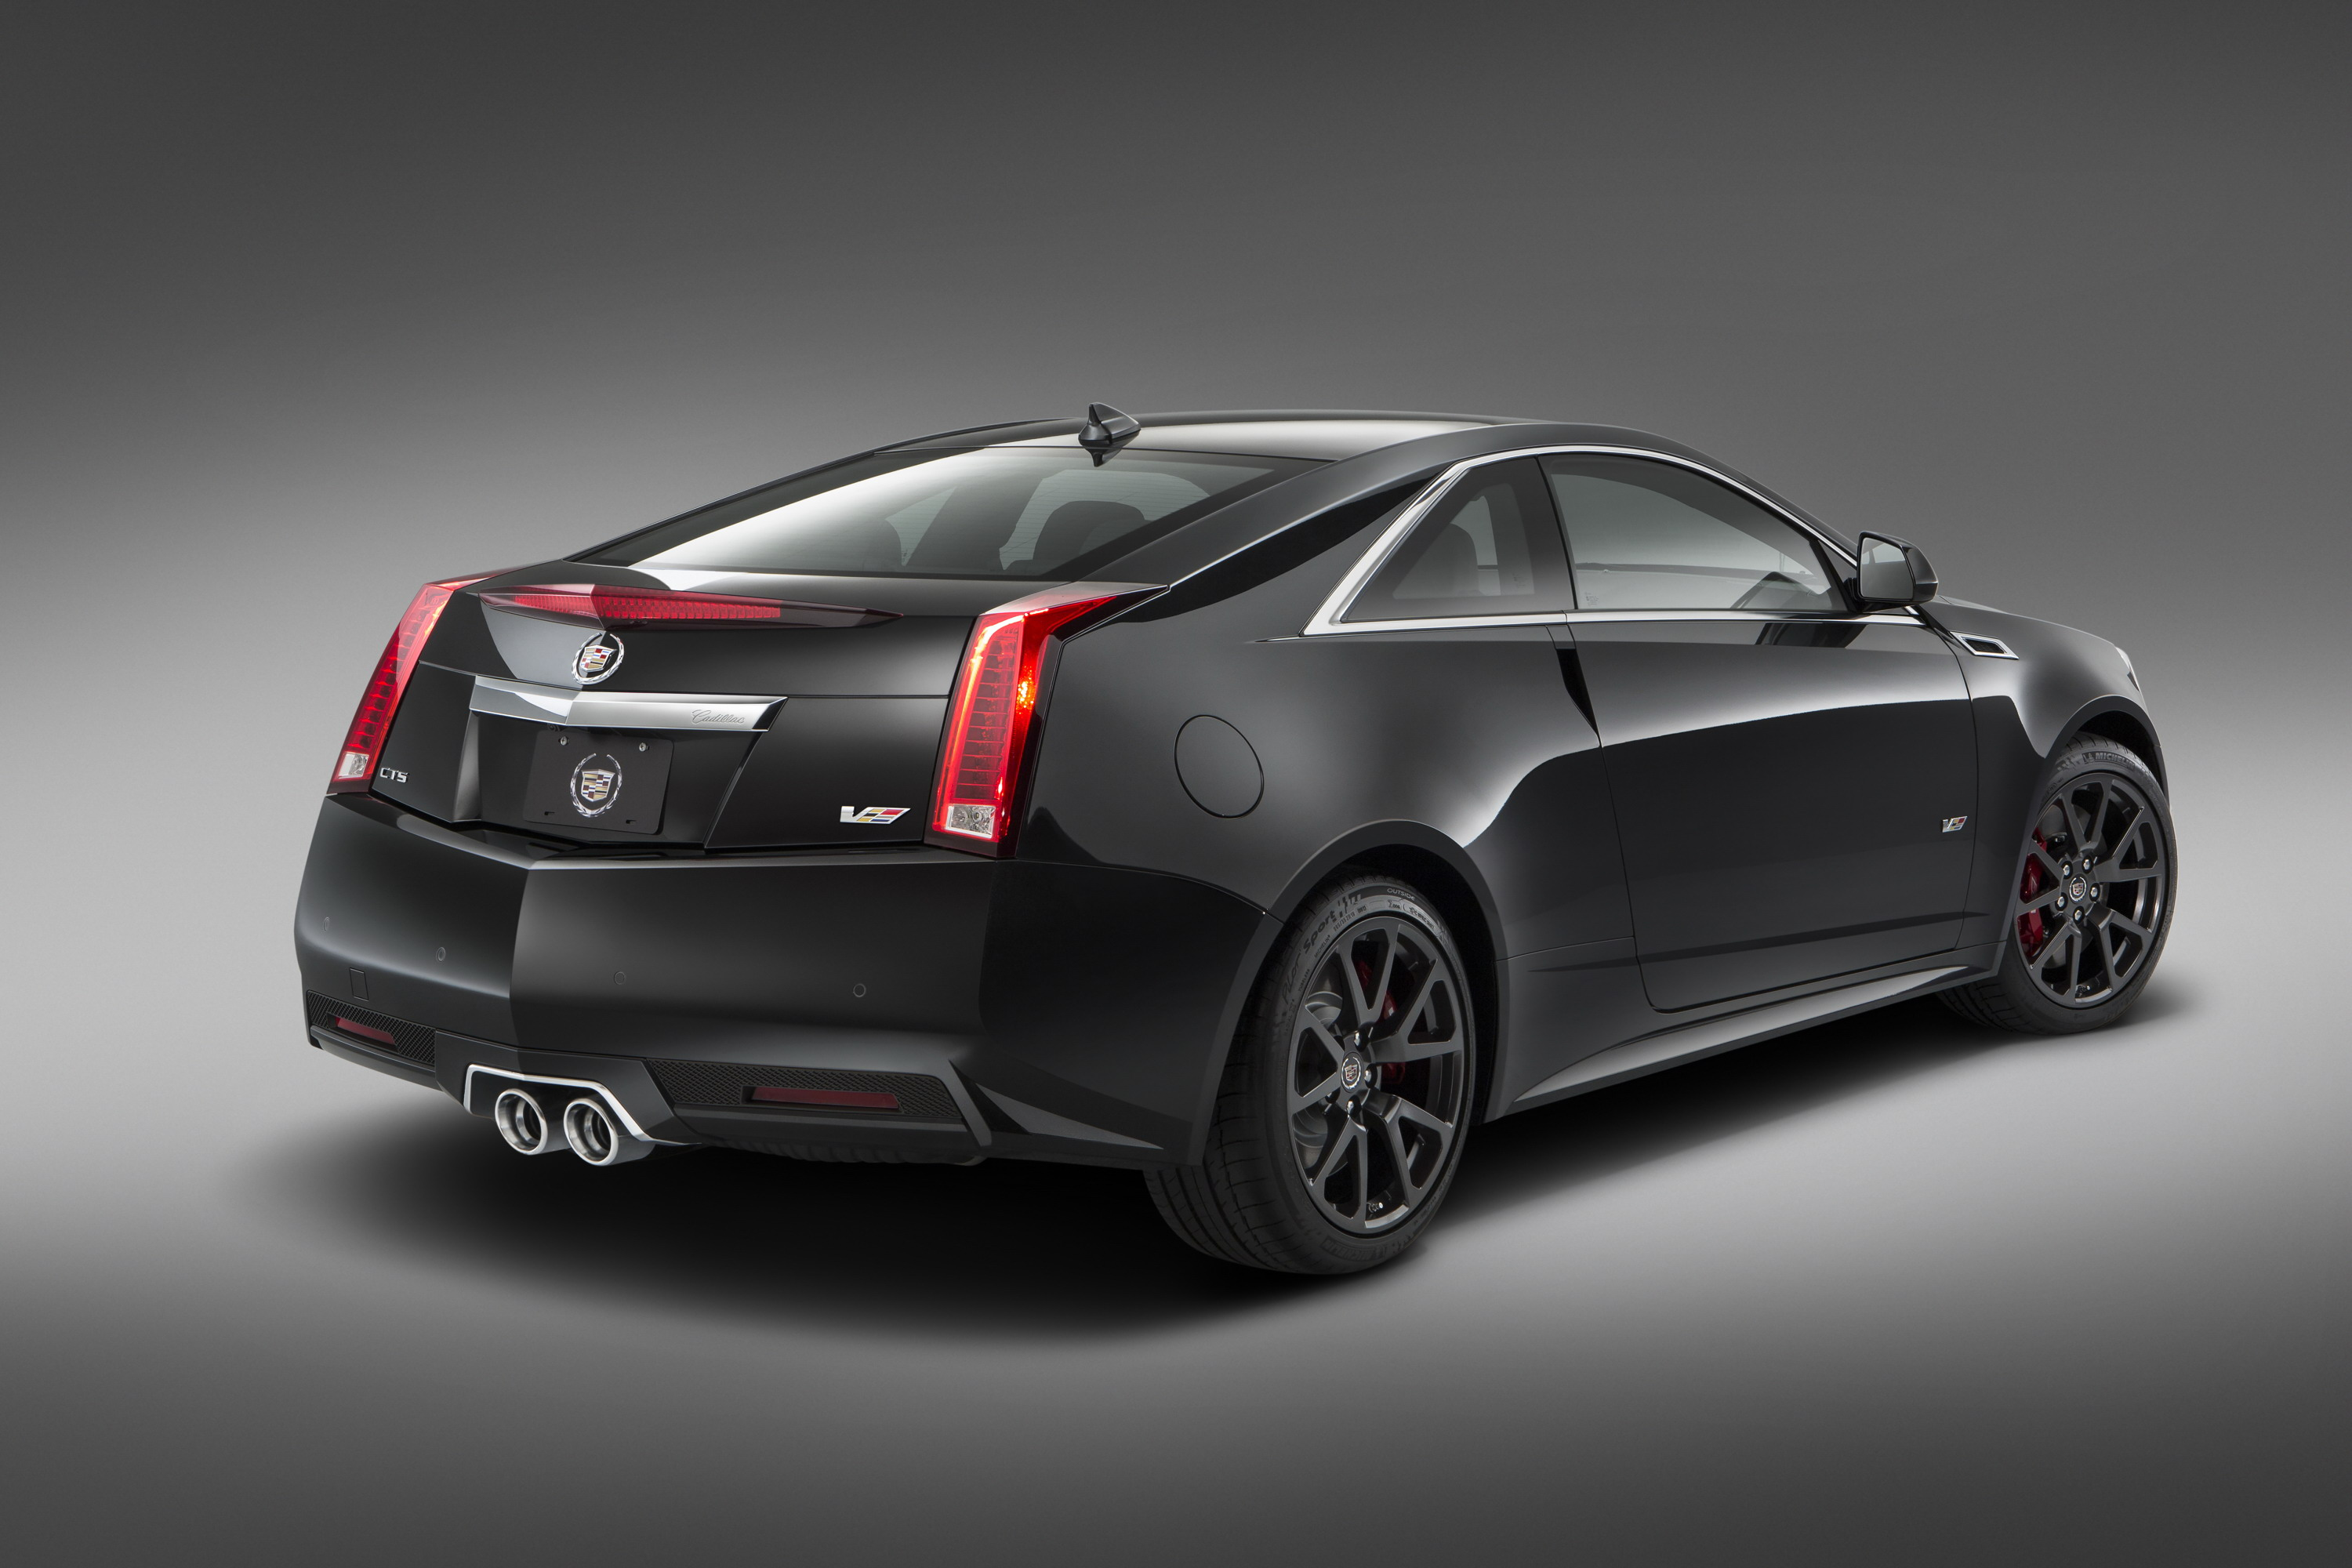 2015 cadillac cts v coupe gallery 551863 top speed. Black Bedroom Furniture Sets. Home Design Ideas